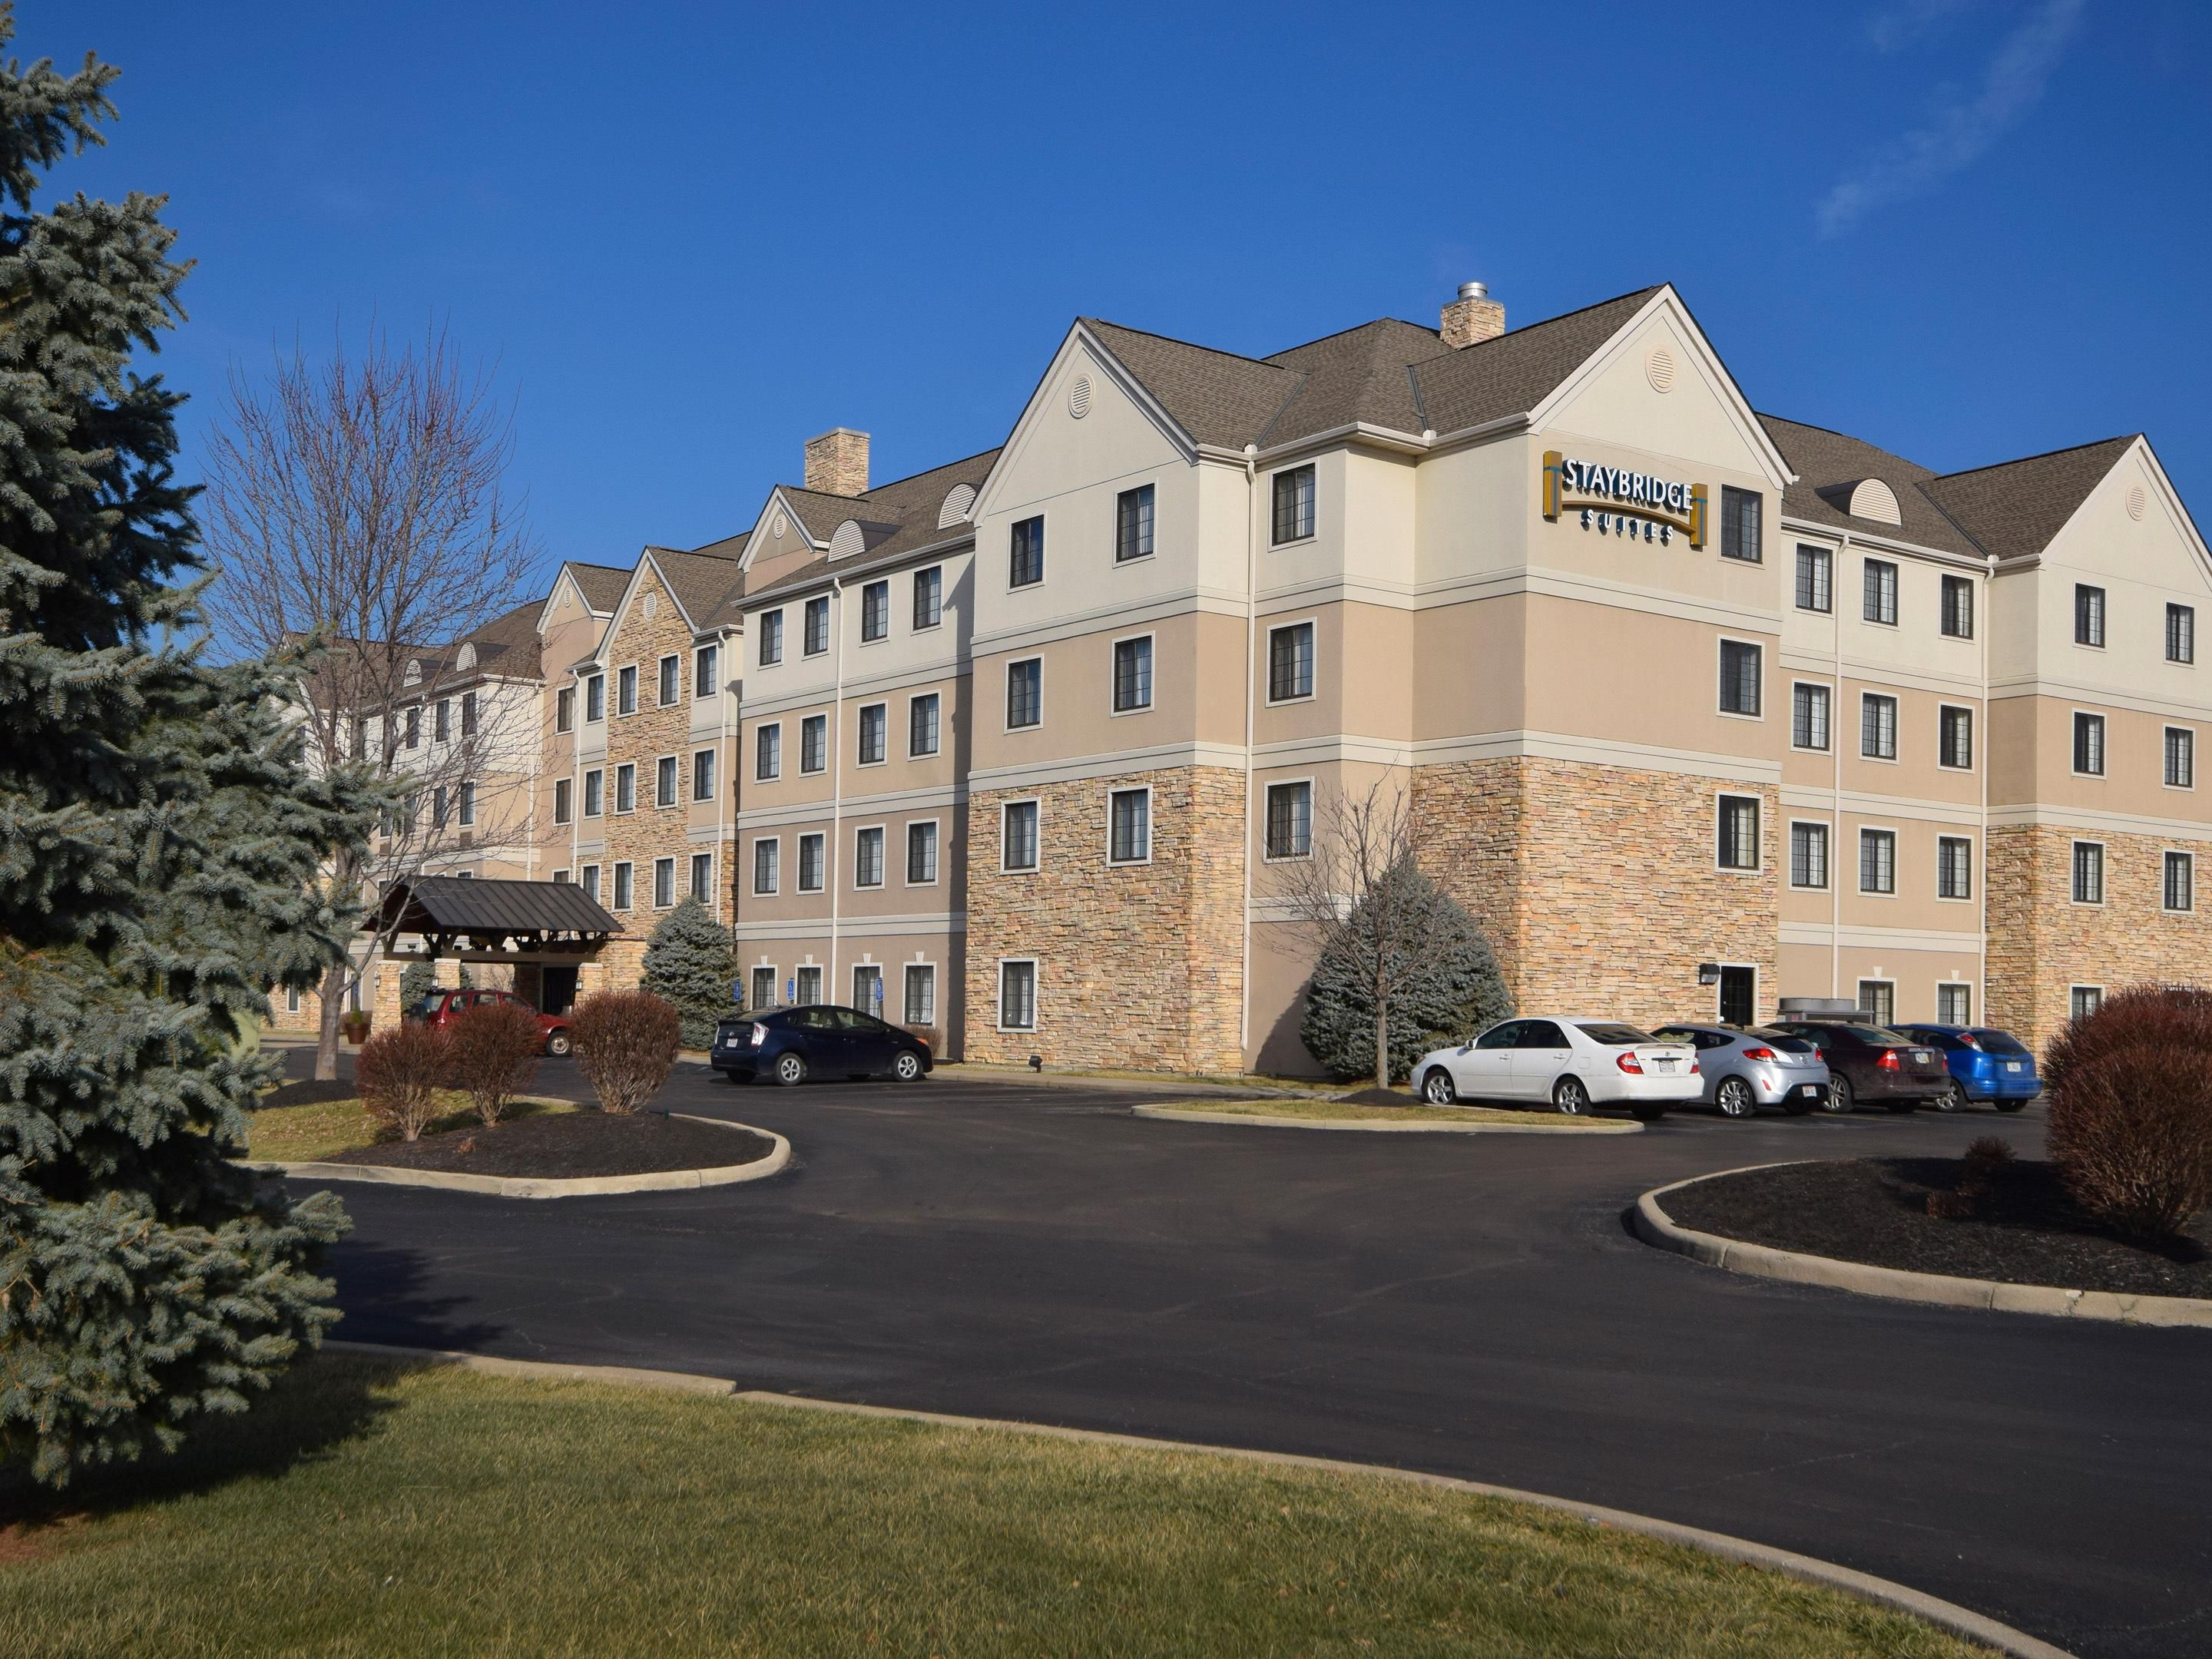 Oh Hotels Staybridge Suites Cincinnati North Extended Stay Hotel In West Chester